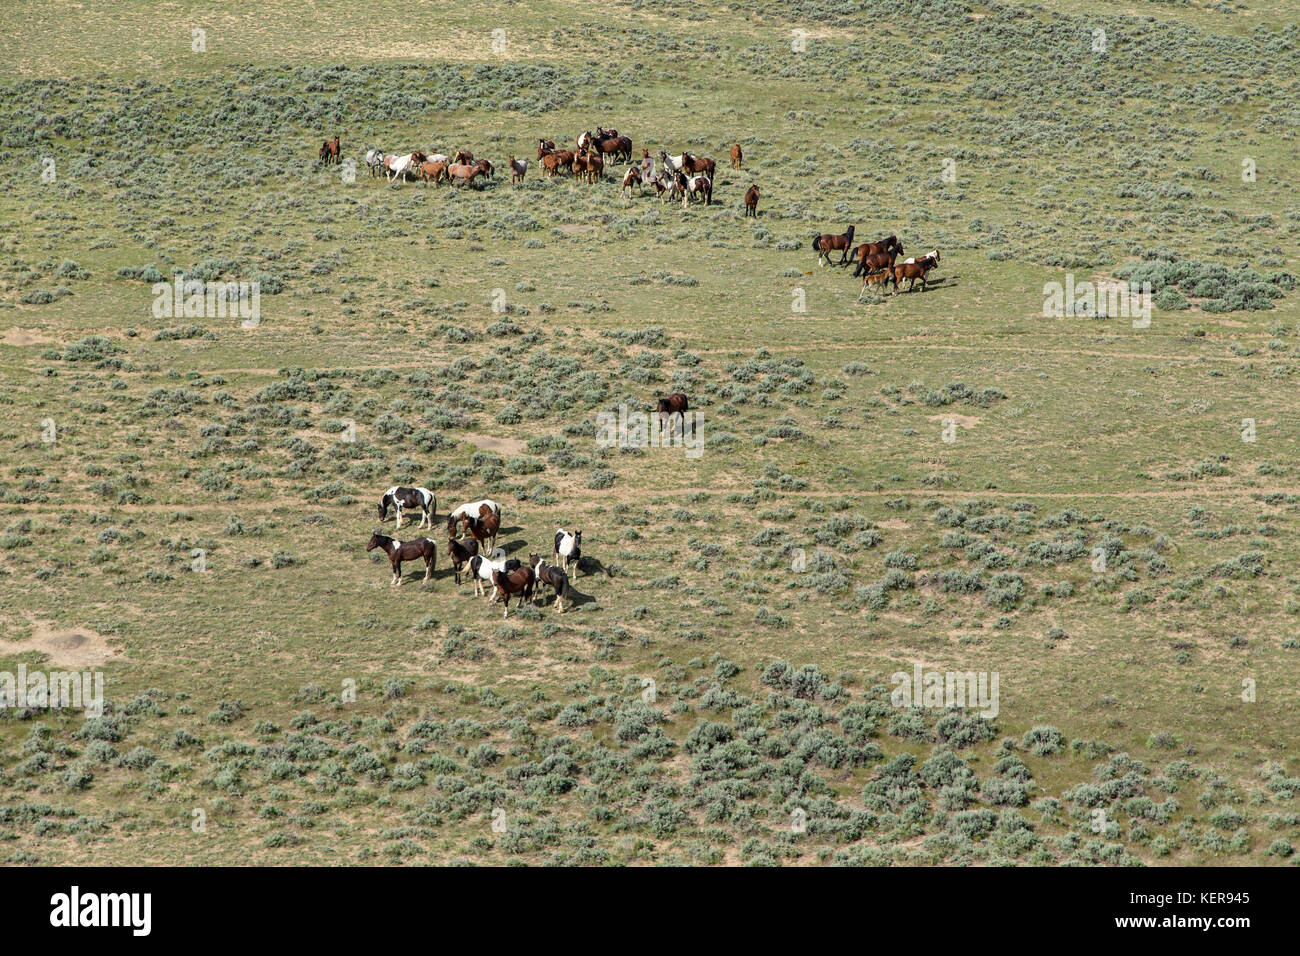 Aerial photos of wild mustangs in Wyoming - Stock Image